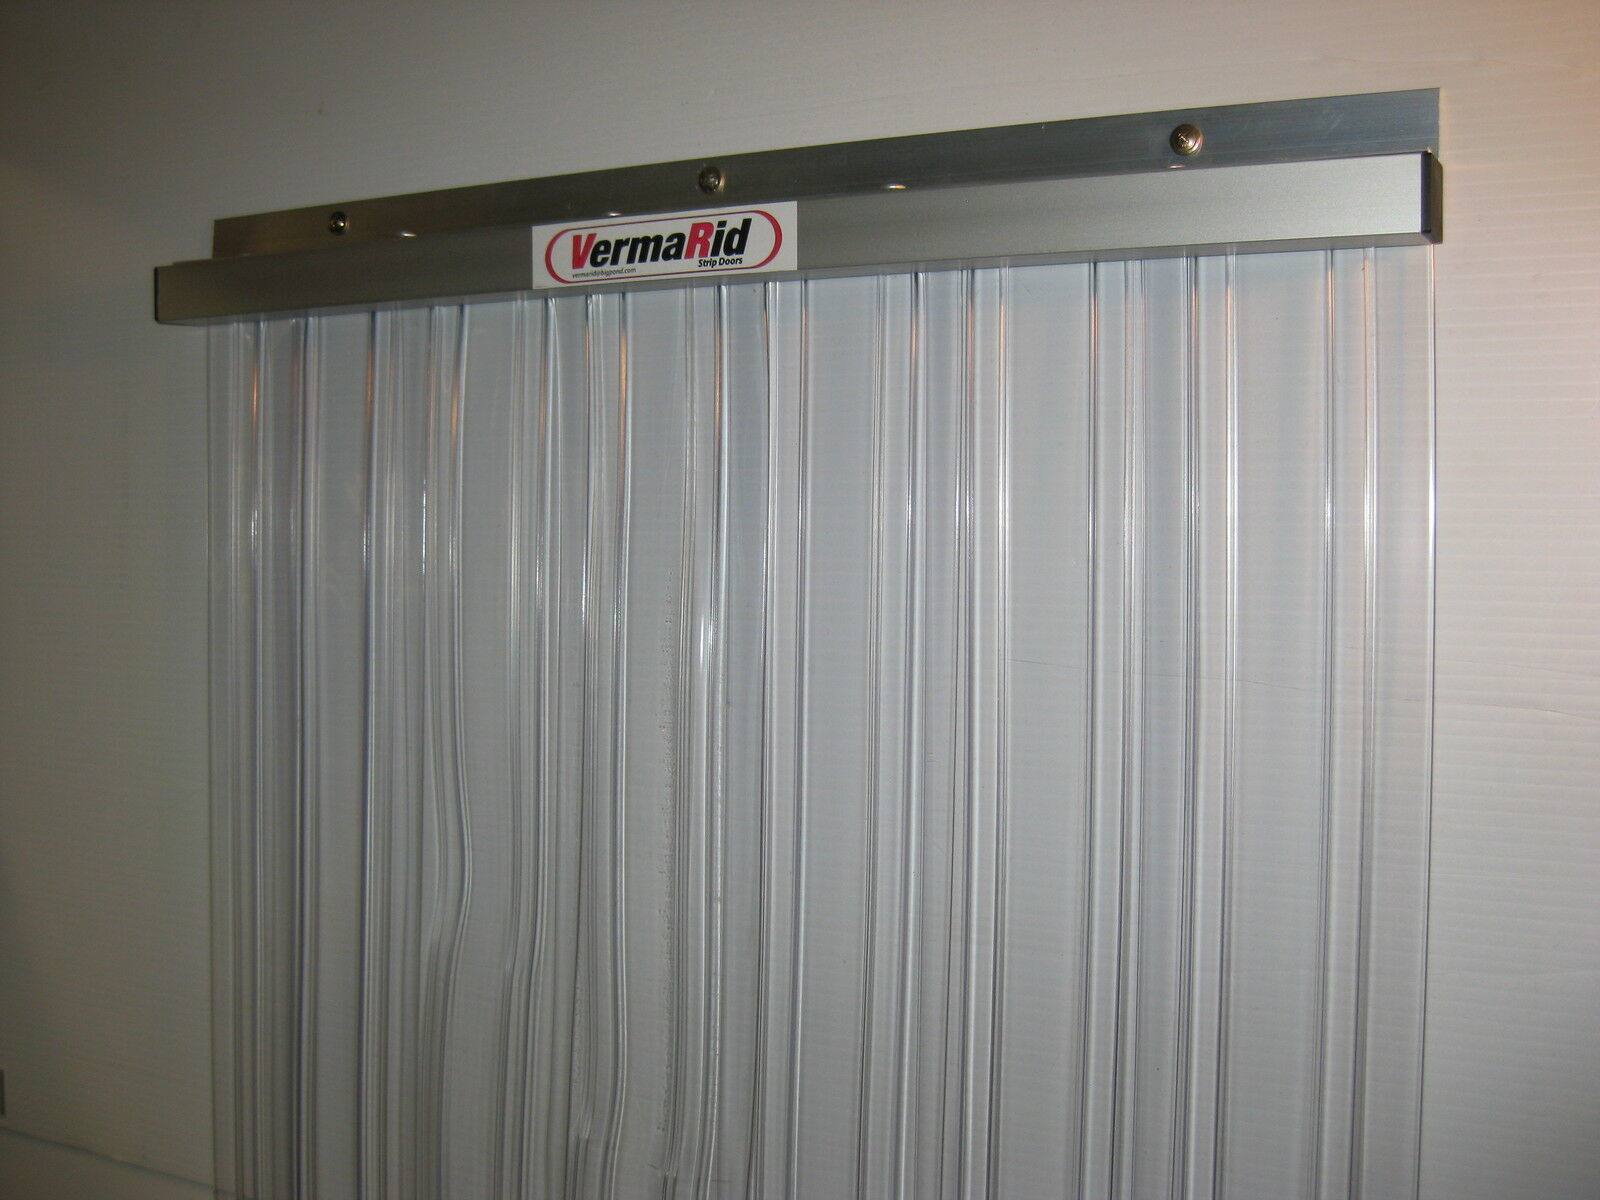 pvc coolroom general entry strip curtain door 2100x900